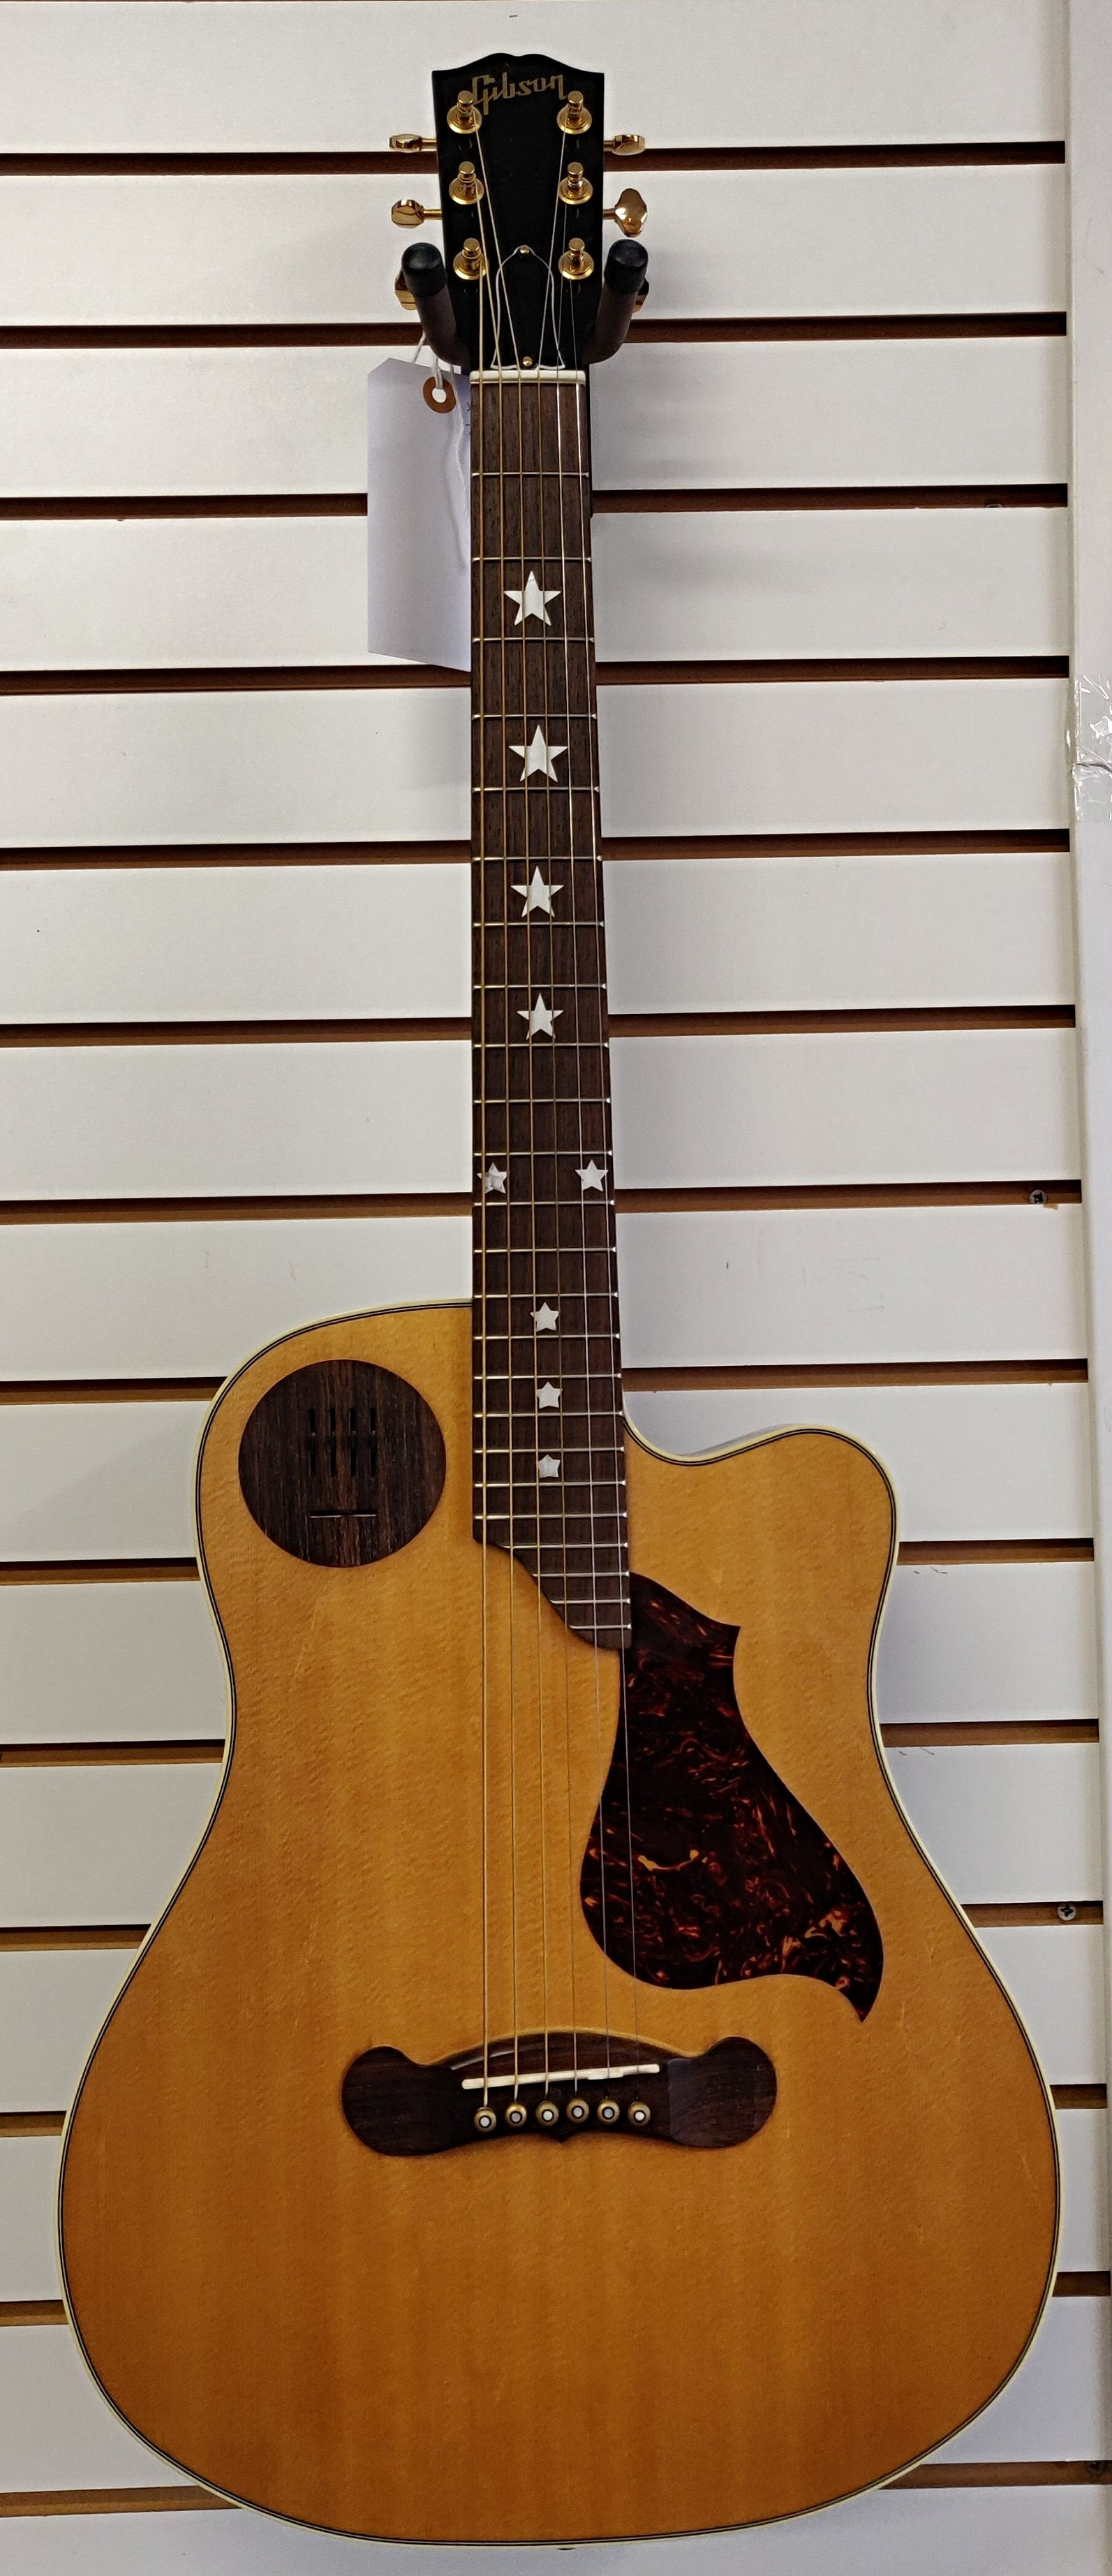 USED - Gibson Traveling Songwriter EC (2005 Model)